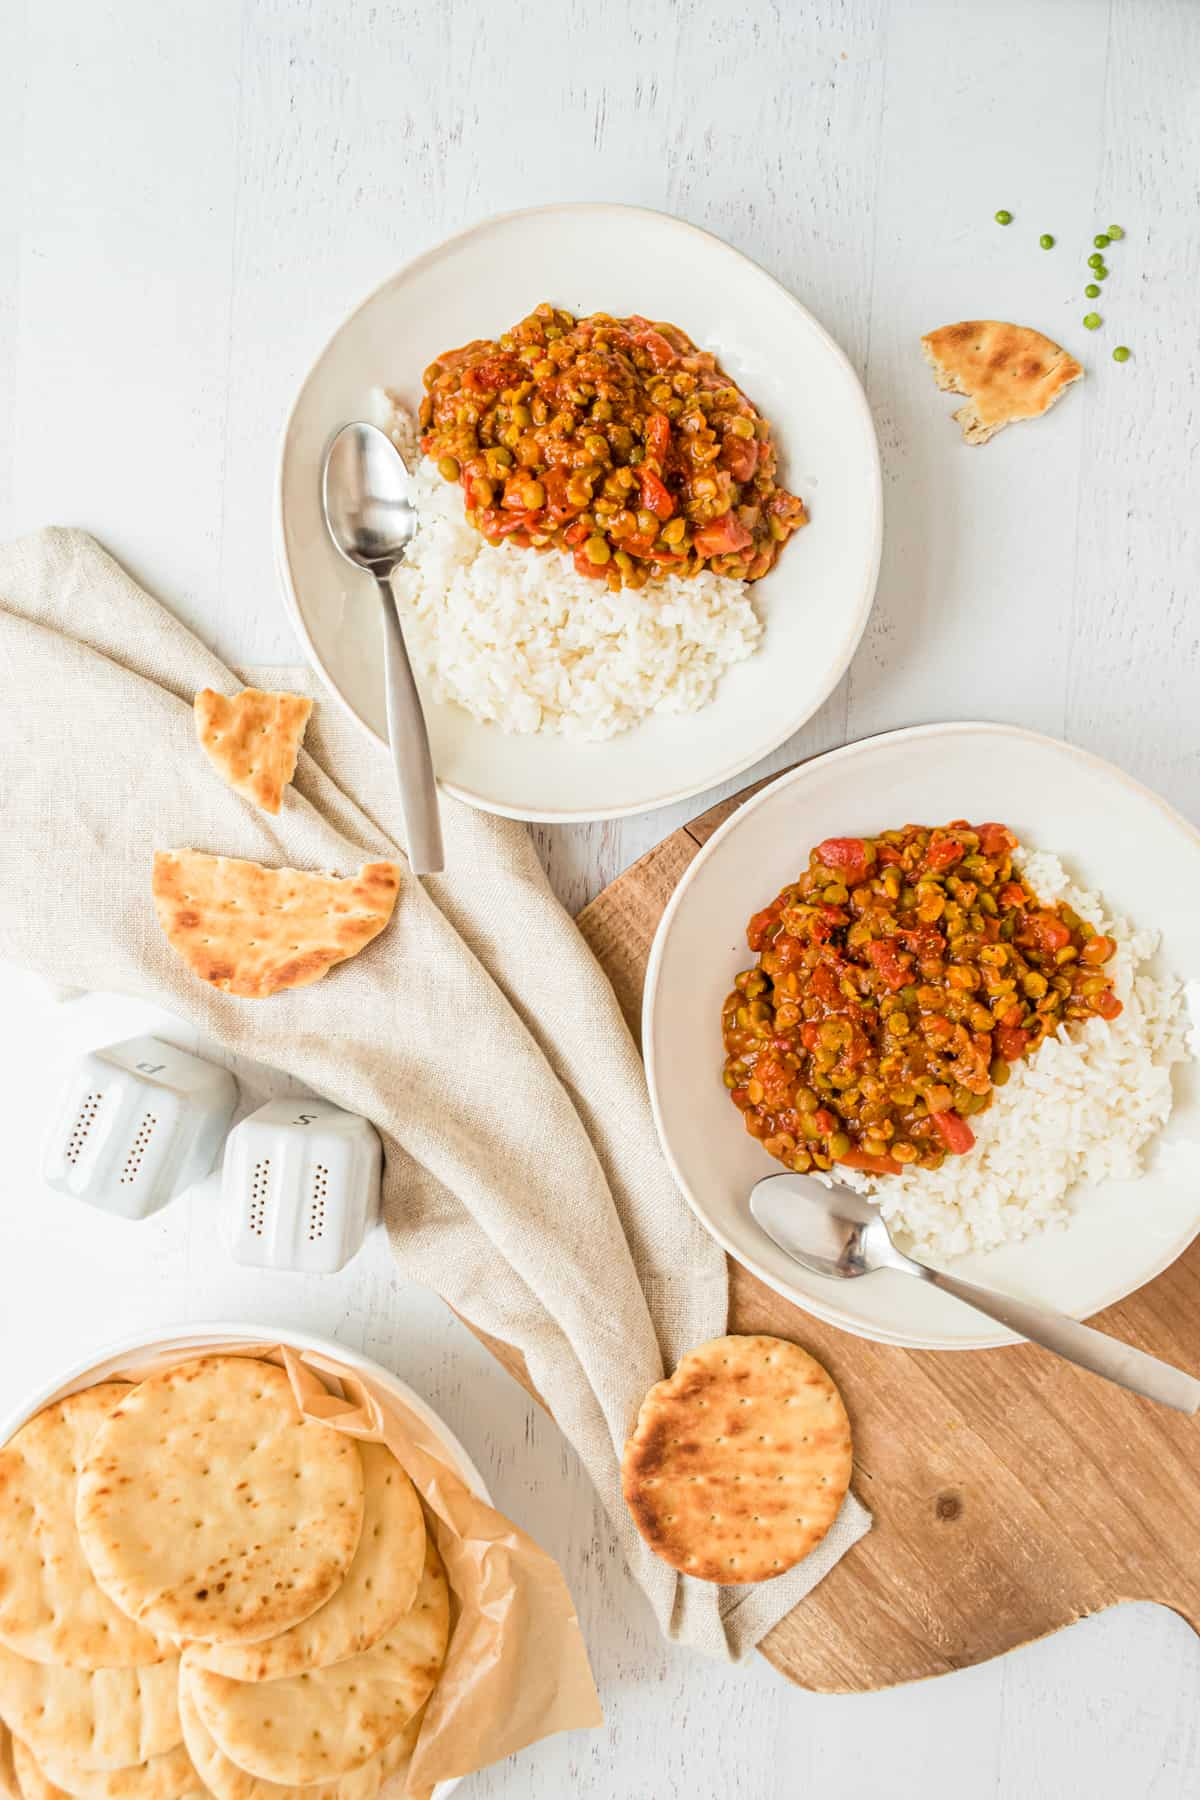 Two bowls of Split Pea Curry sit next to each other with Naan bread nearby.